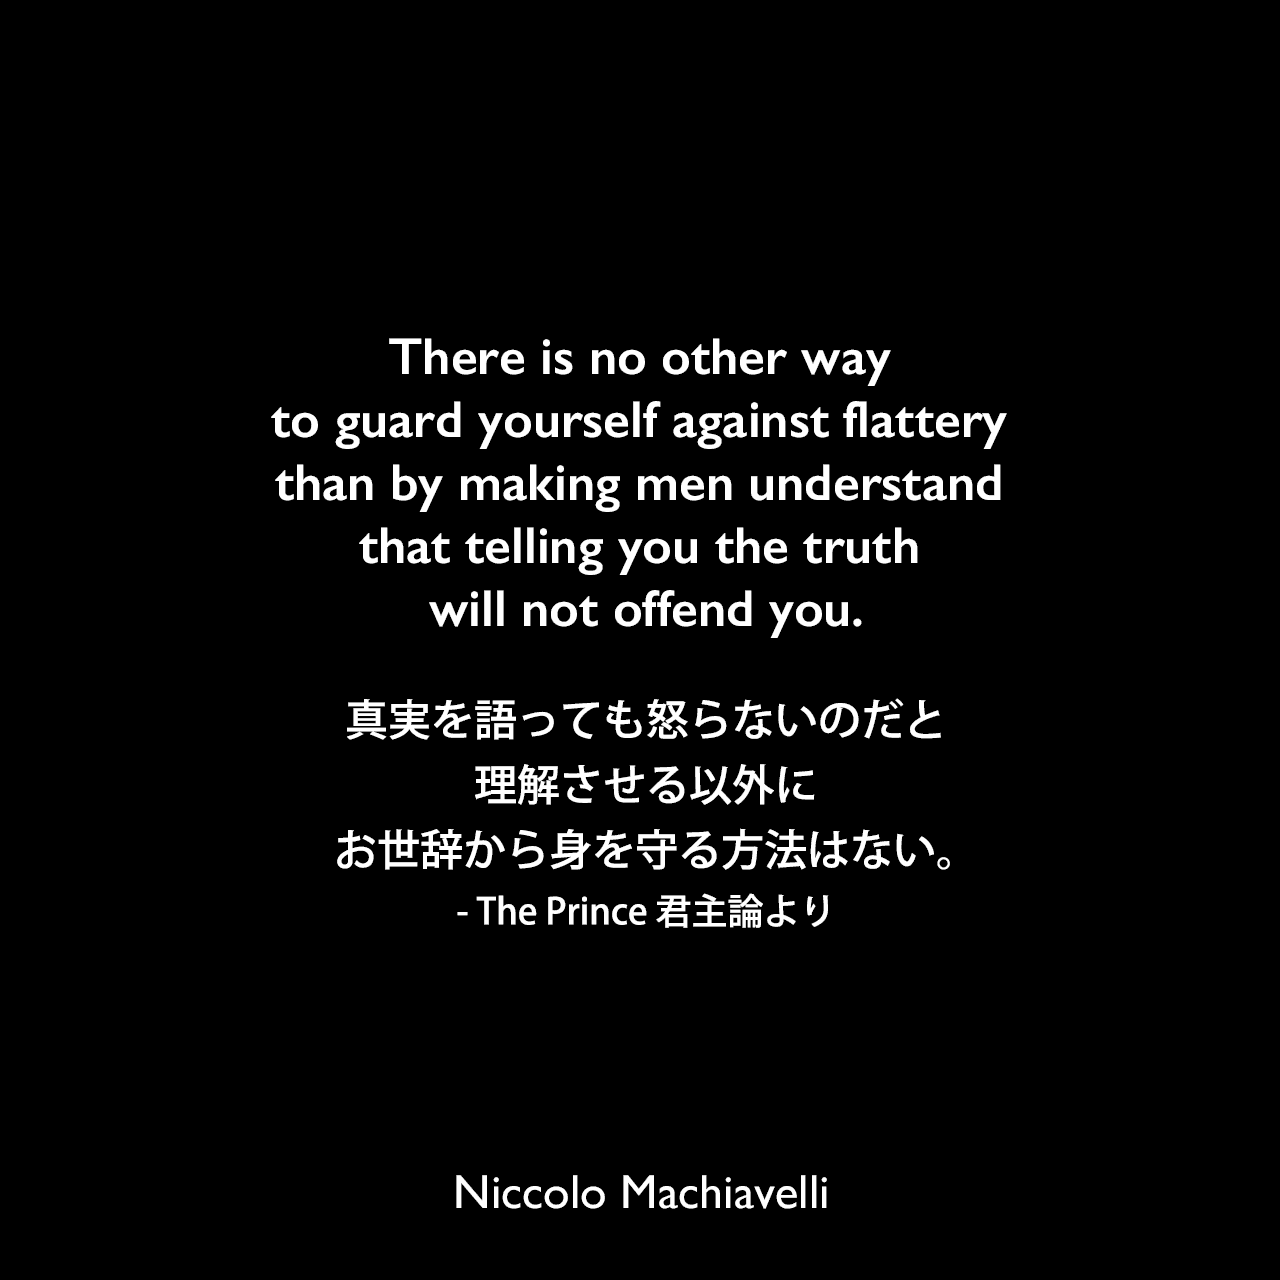 There is no other way to guard yourself against flattery than by making men understand that telling you the truth will not offend you.真実を語っても怒らないのだと理解させる以外に、お世辞から身を守る方法はない。- The Prince 君主論よりNiccolo Machiavelli